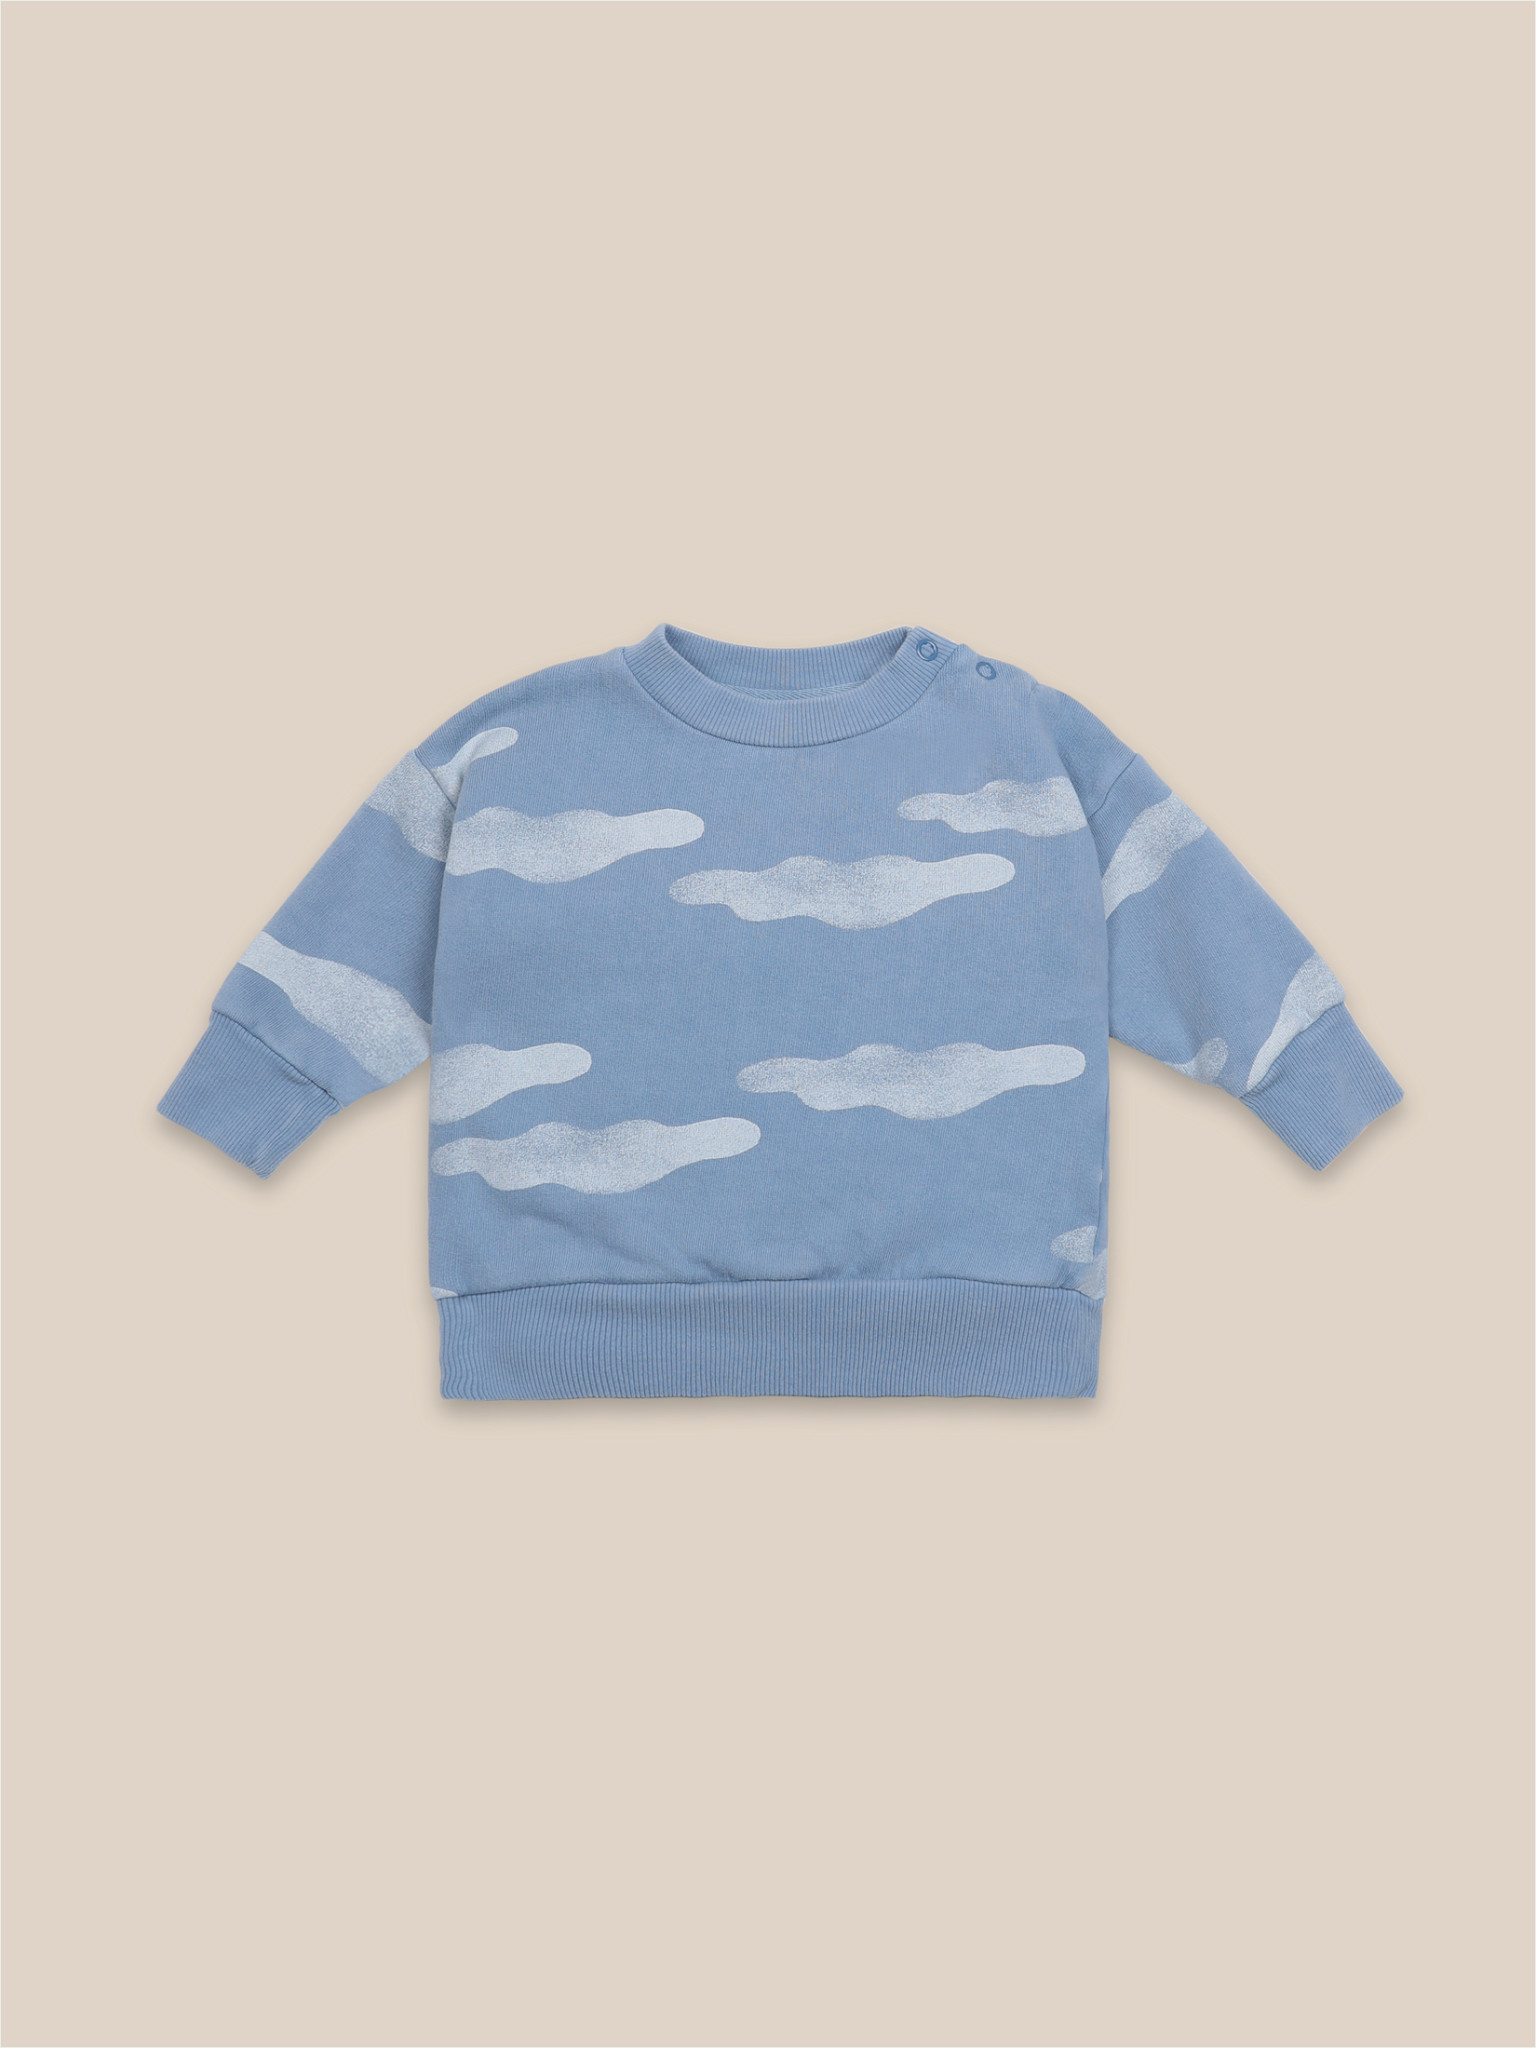 BOBO CHOSES Clouds All Over Sweatshirt